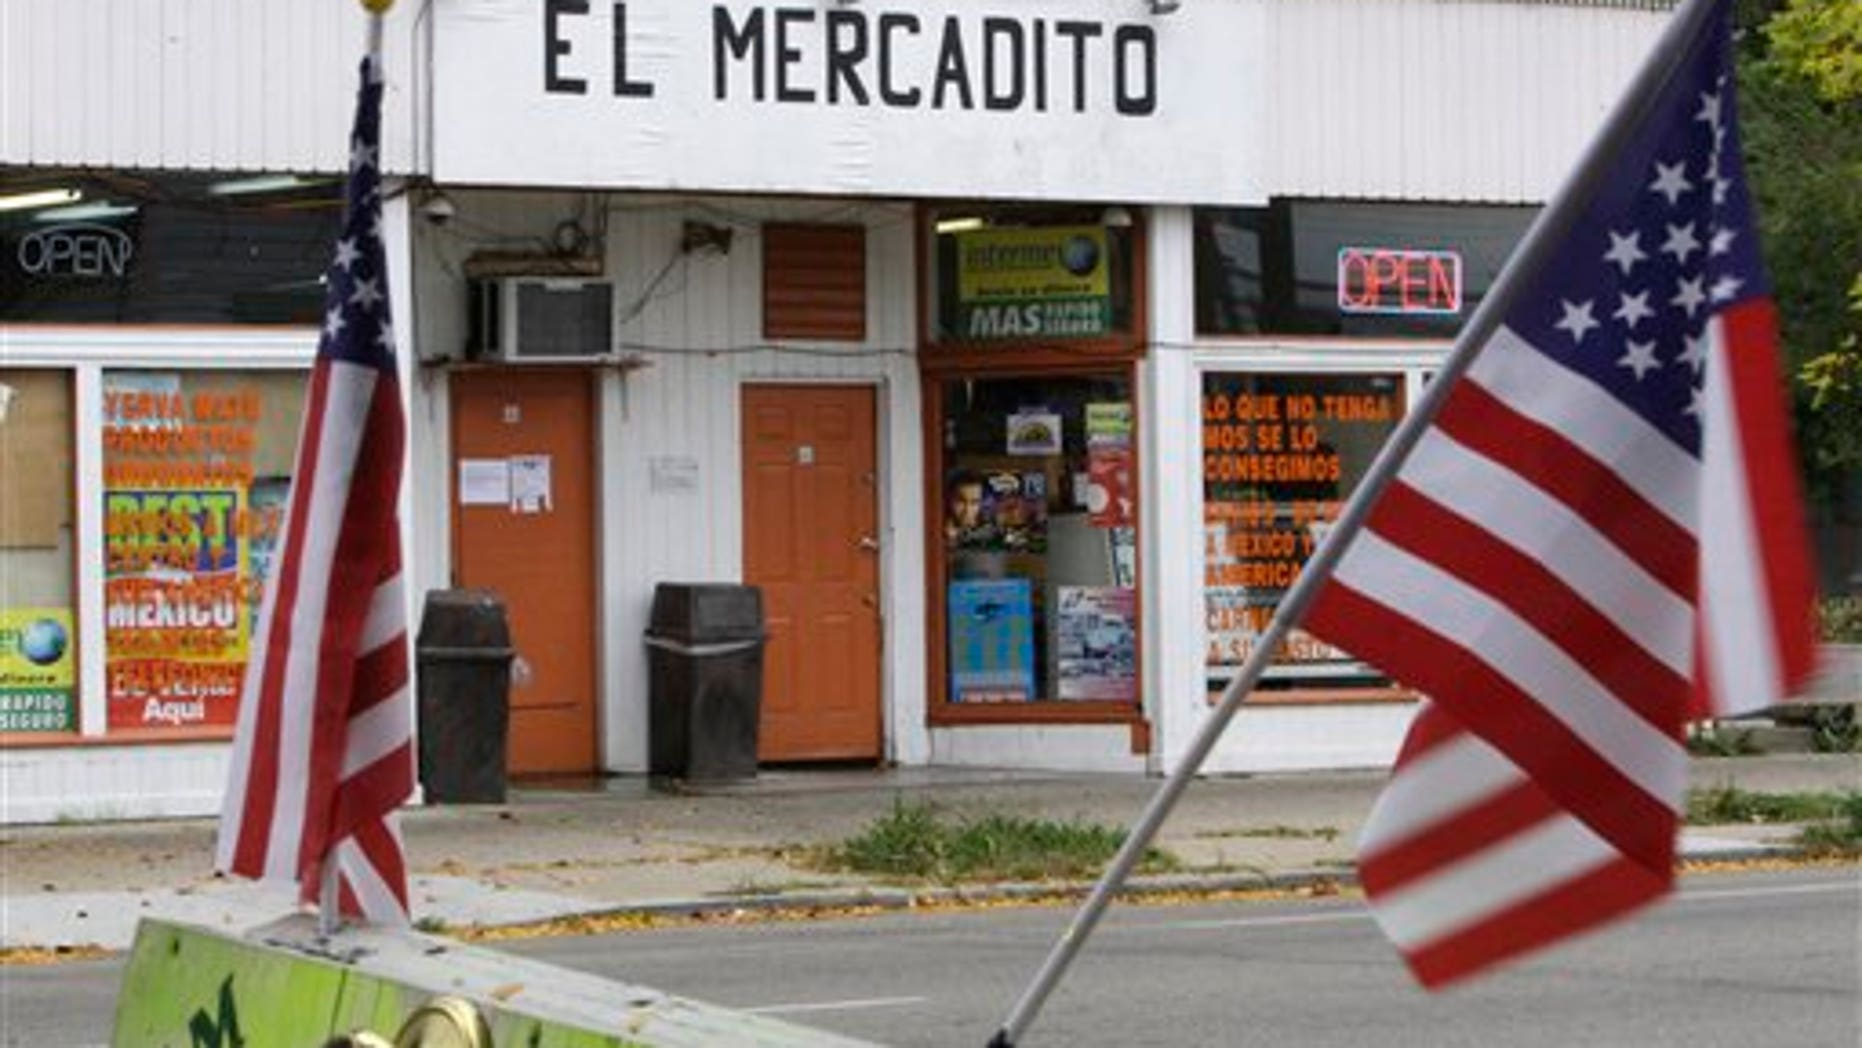 October 12: A pair of U.S. flags flies on a sign at a local lock business, across from a store aimed at attracting local immigrants in Dayton, Ohio.